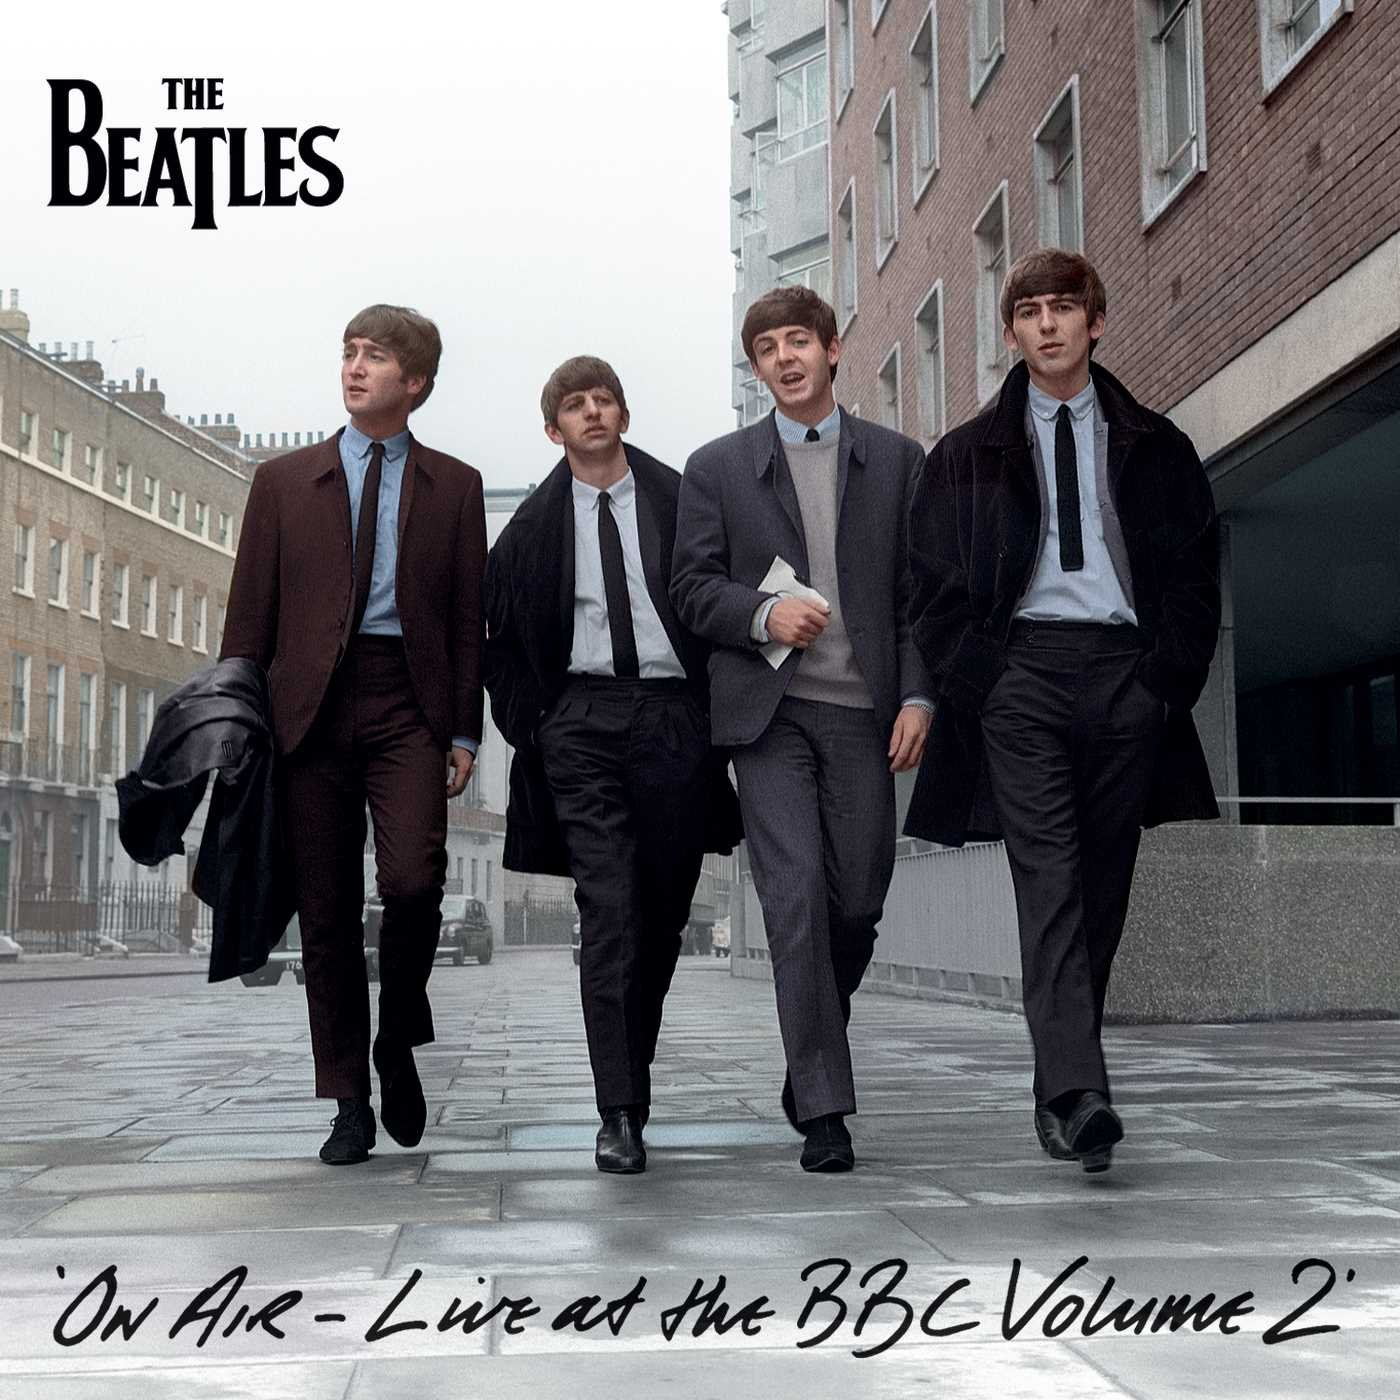 The Beatles - On Air - Live At The BBC Volume 2 (2018) [FLAC] Download